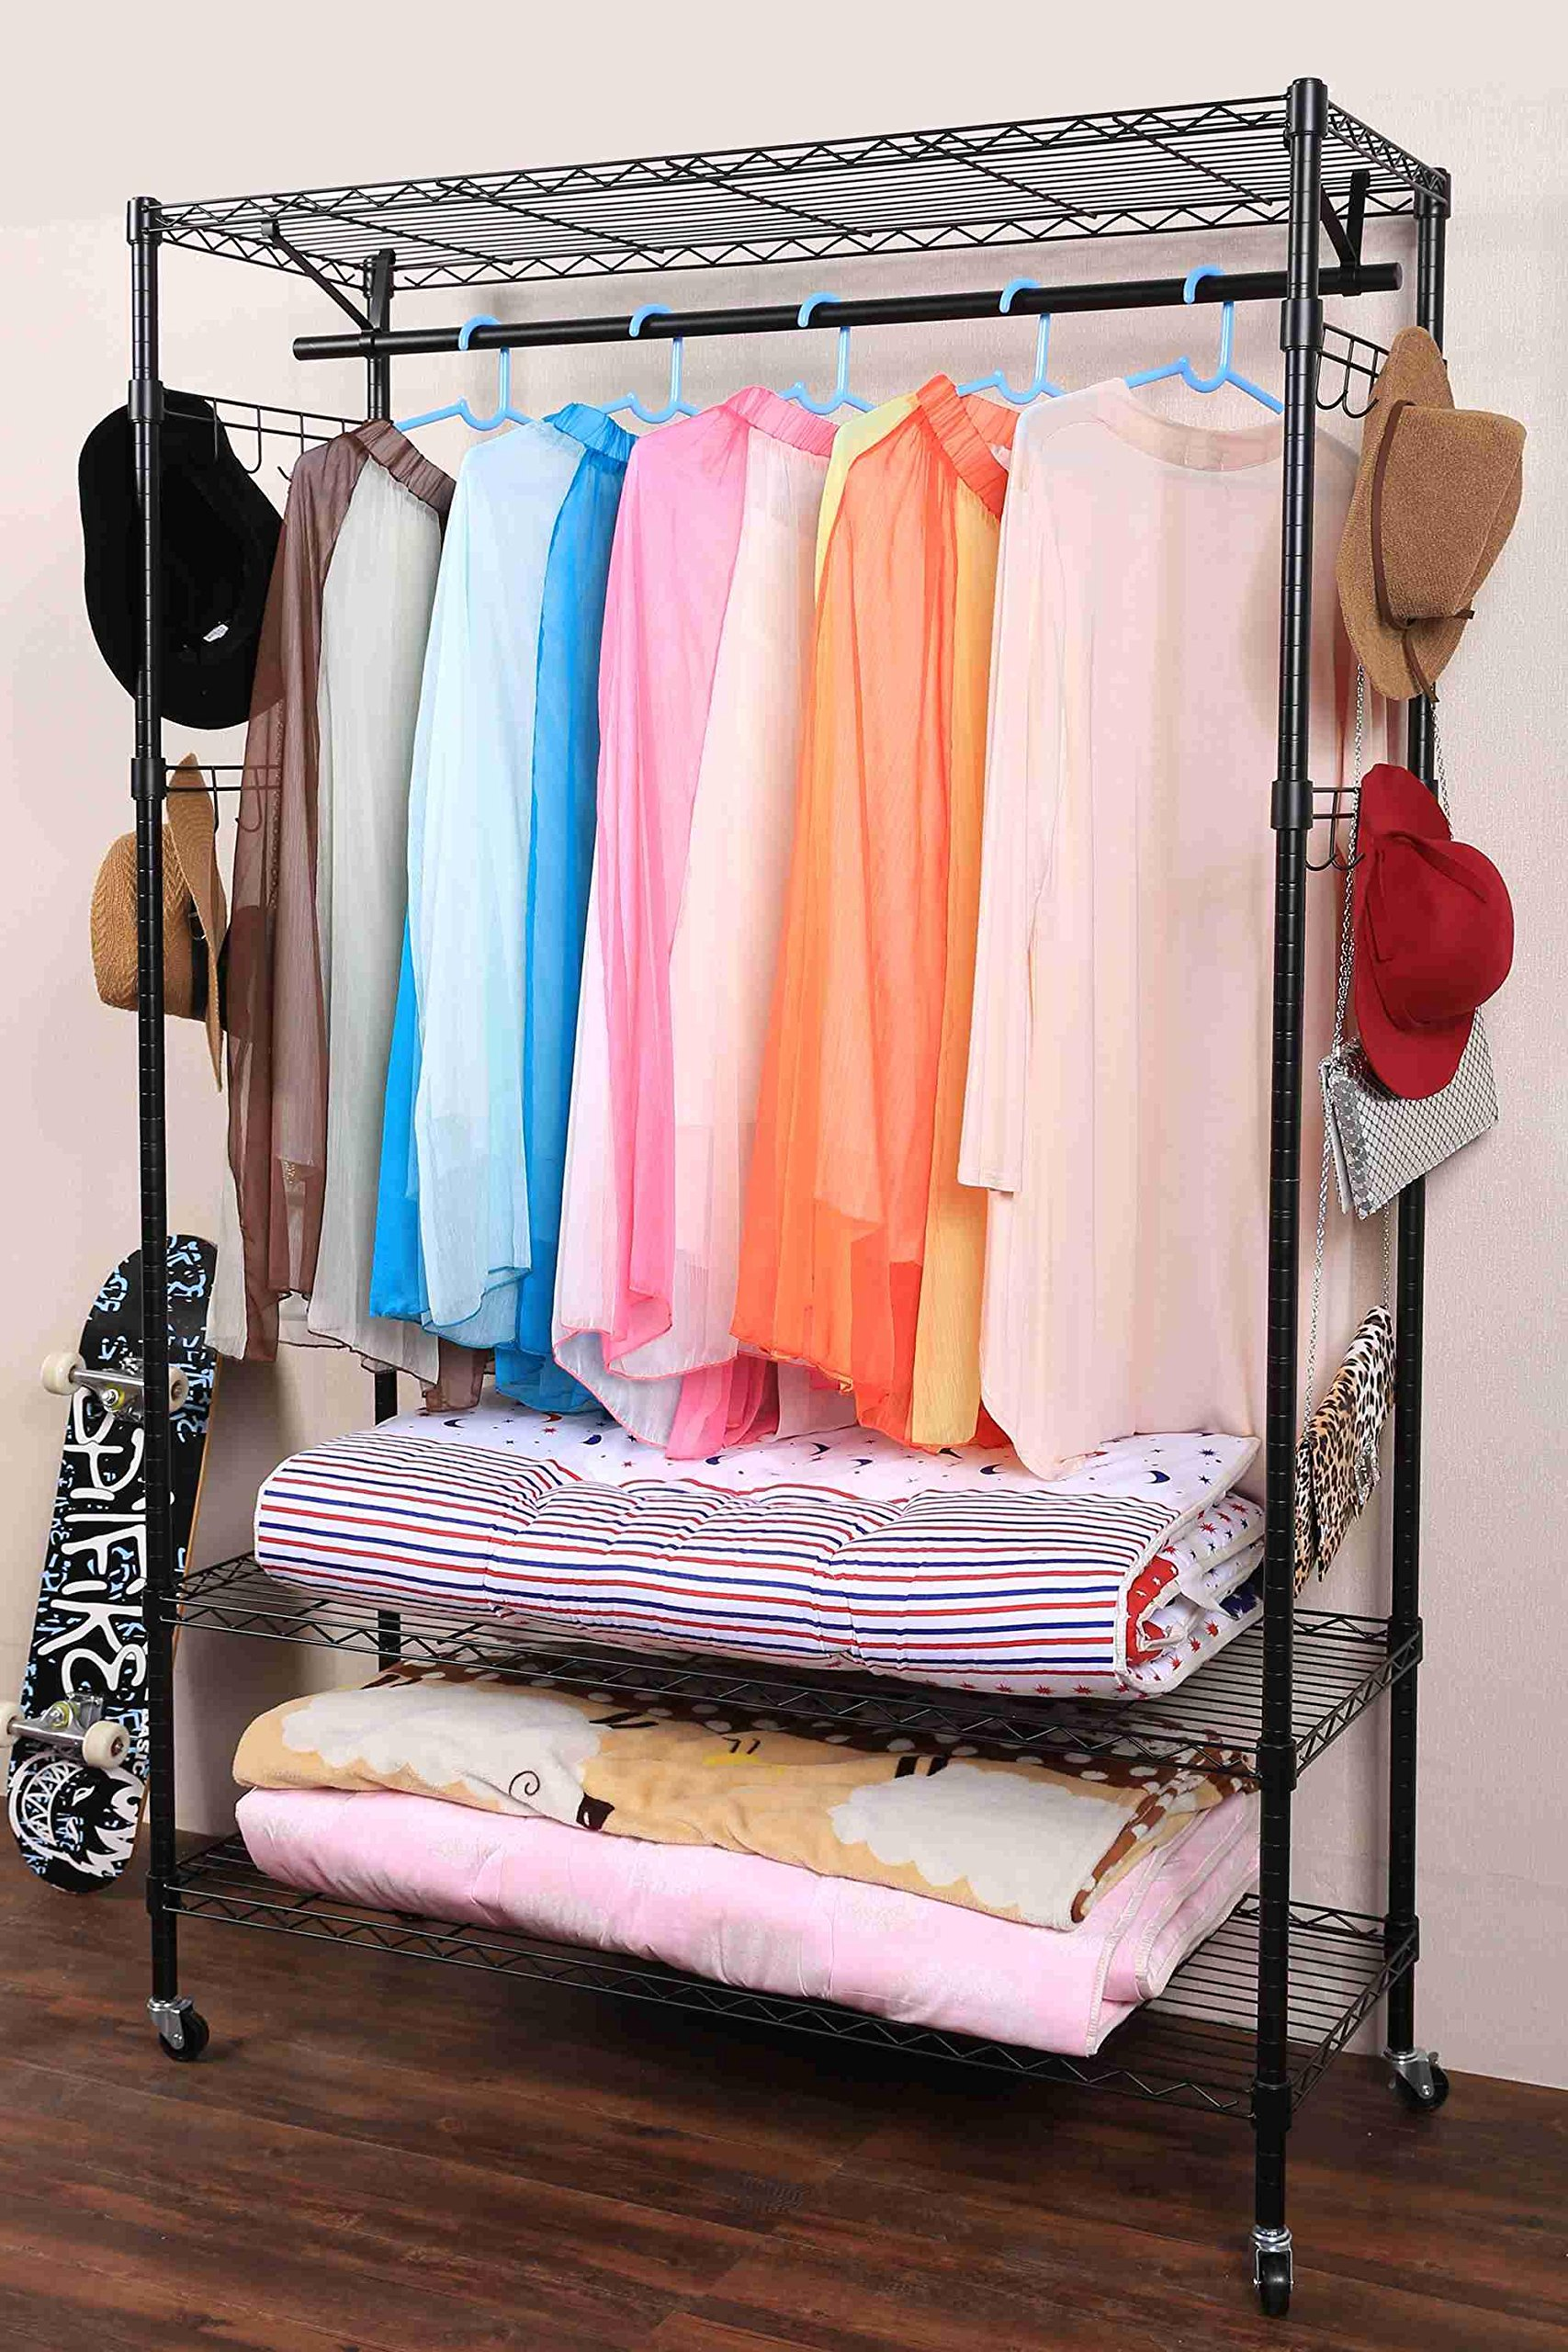 Fashine Heavy Duty Wire Shelving Clothing Rolling Rack, Moveable 3-Tiers Garment Rack for Closet Organizer with Hanger Bar Wheels Adjustable Shelves and Side Hooks (US Stock)